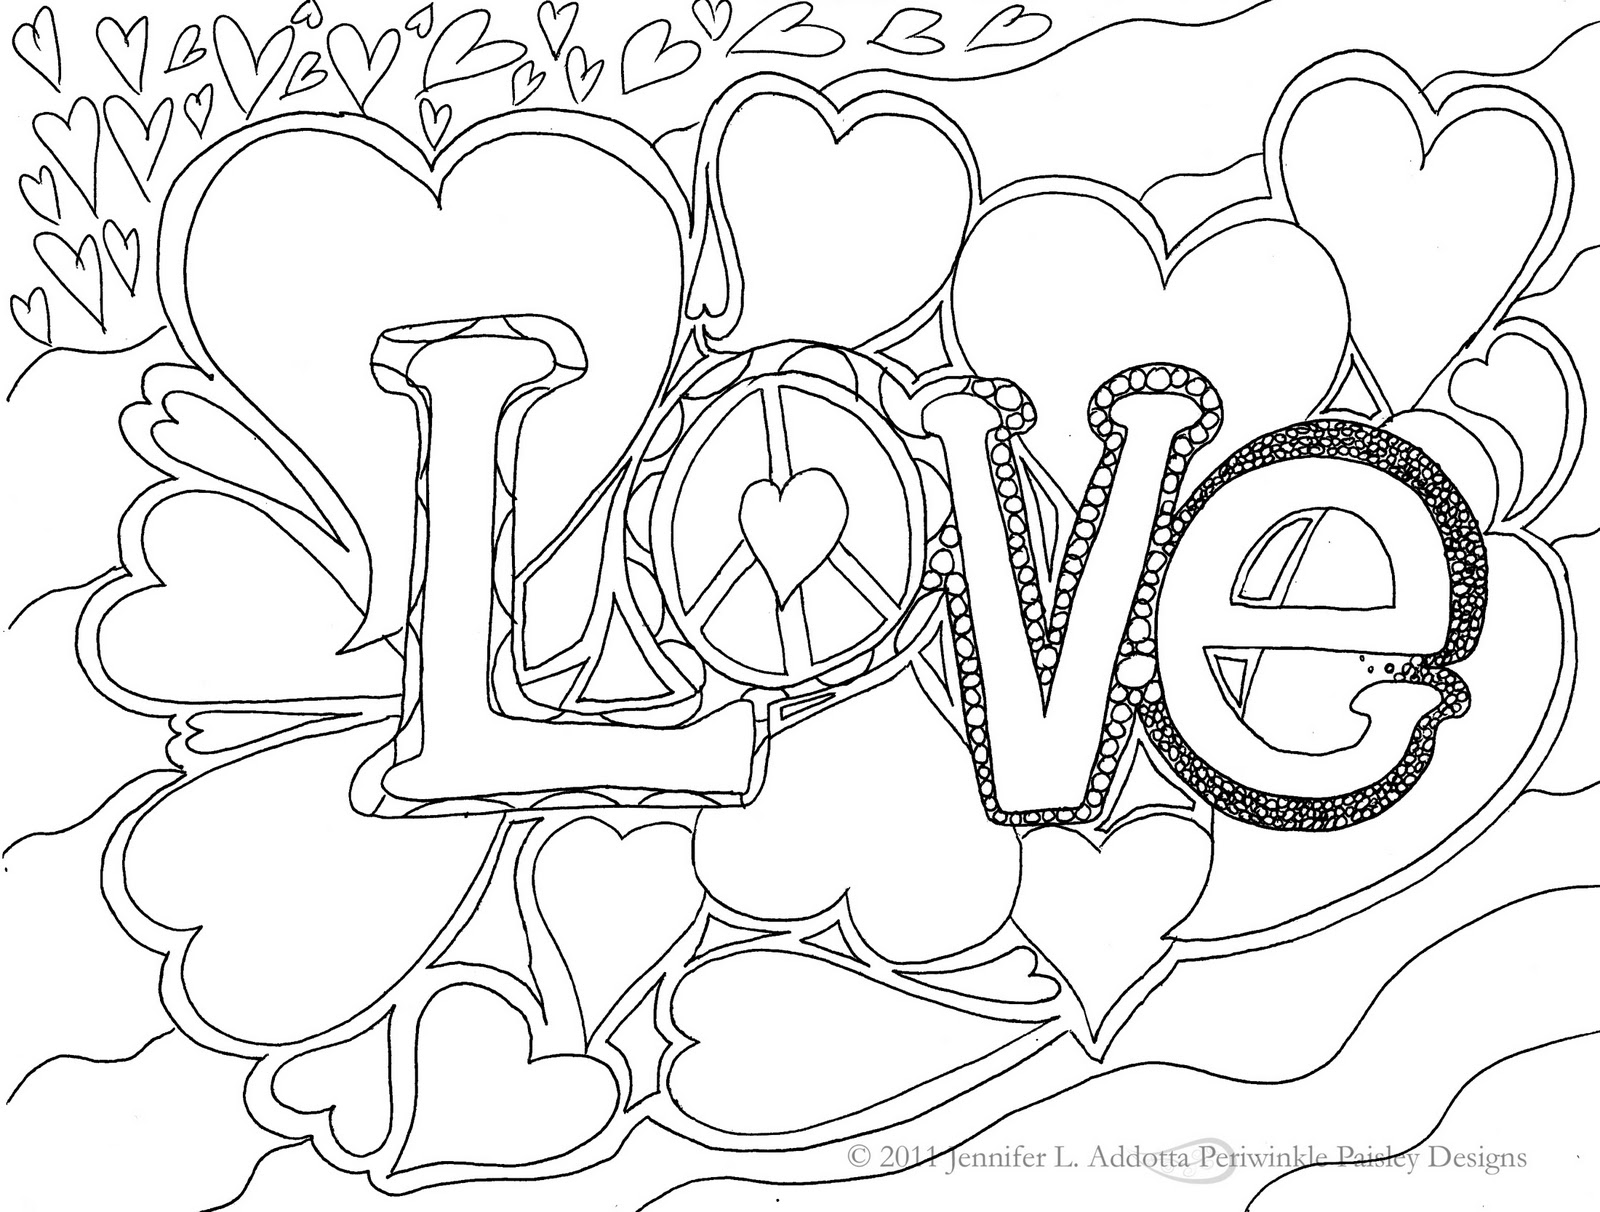 Periwinkle-Paisley: With Love